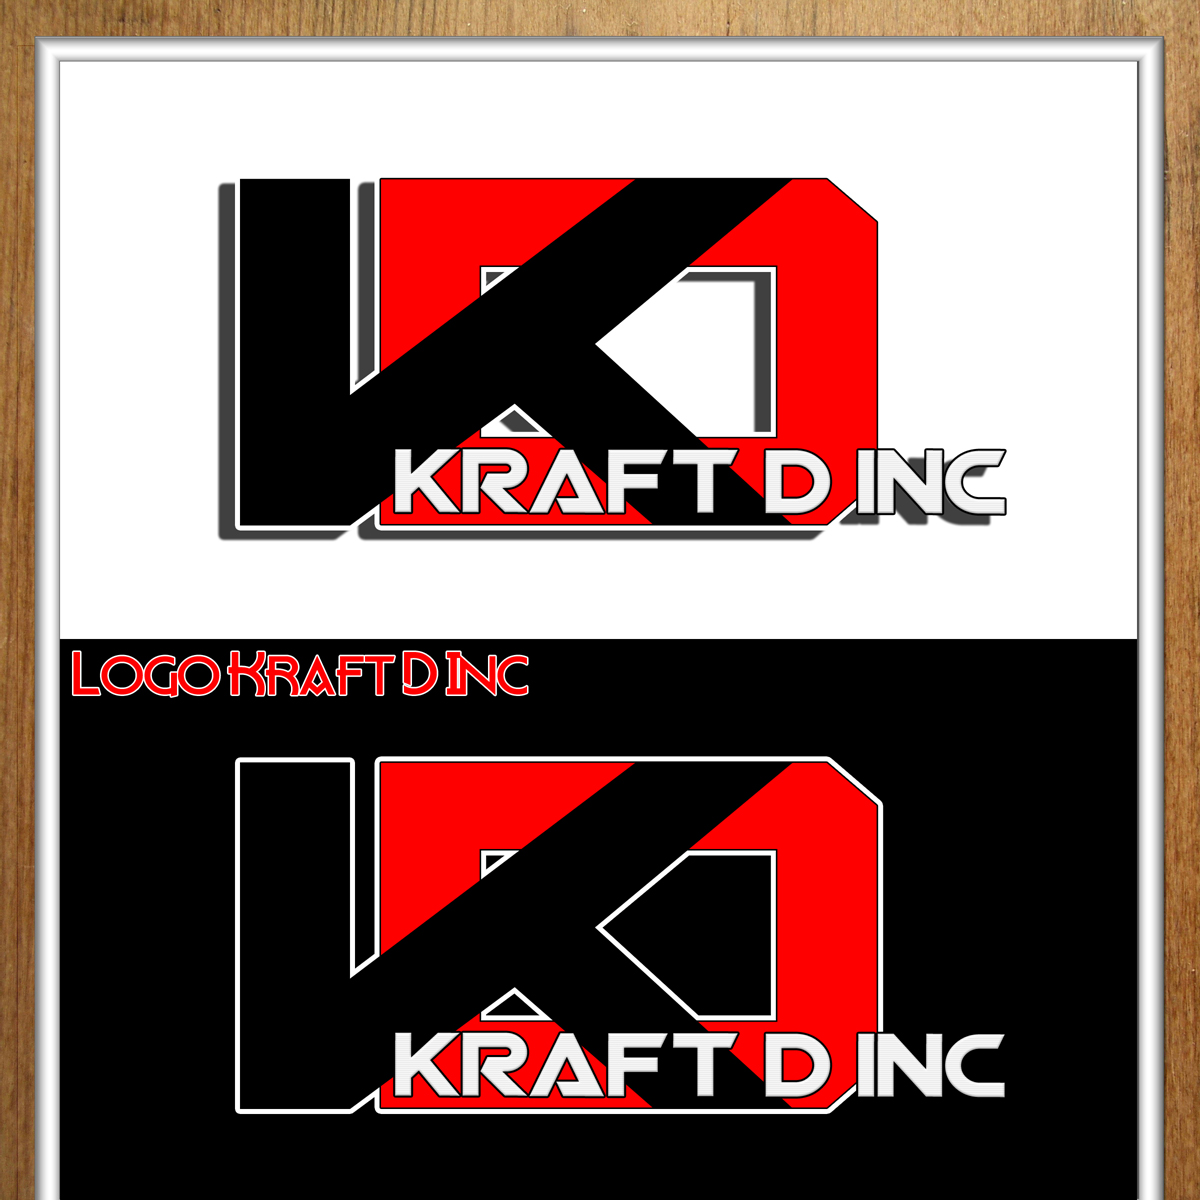 Logo Design by MITUCA ANDREI - Entry No. 246 in the Logo Design Contest Unique Logo Design Wanted for Kraft D Inc.